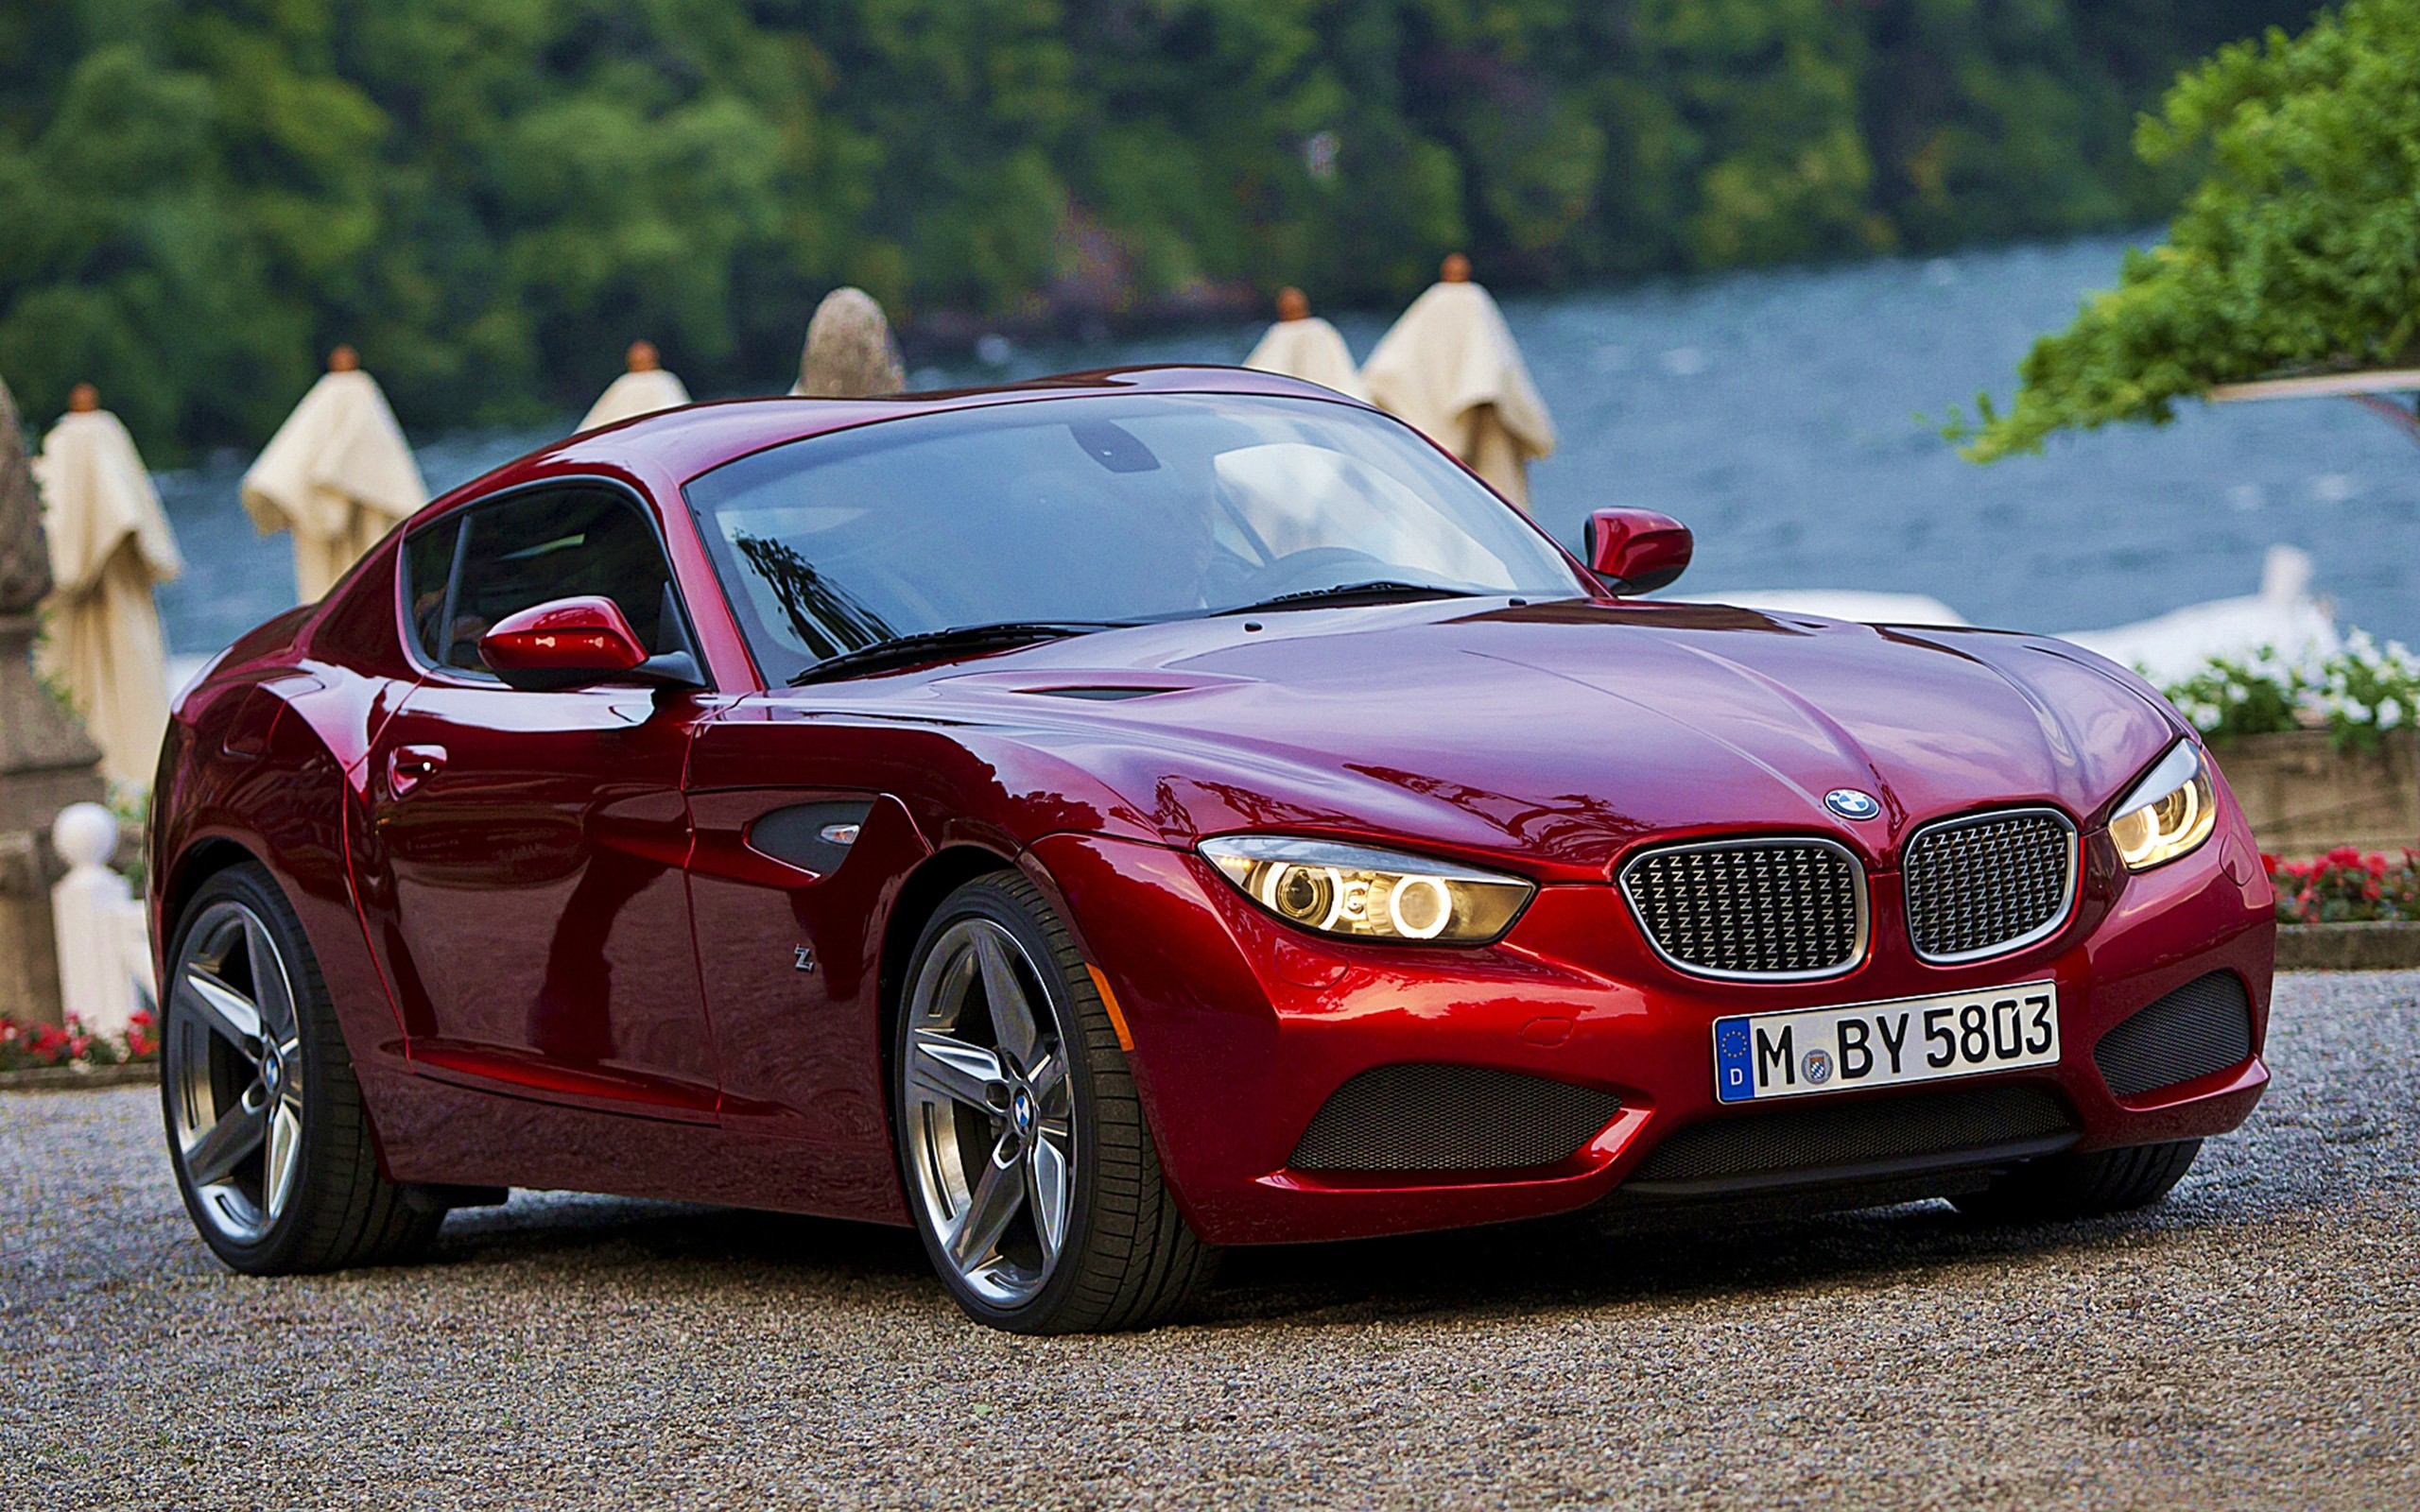 2560x1600 - BMW Zagato Coupe Wallpapers 6